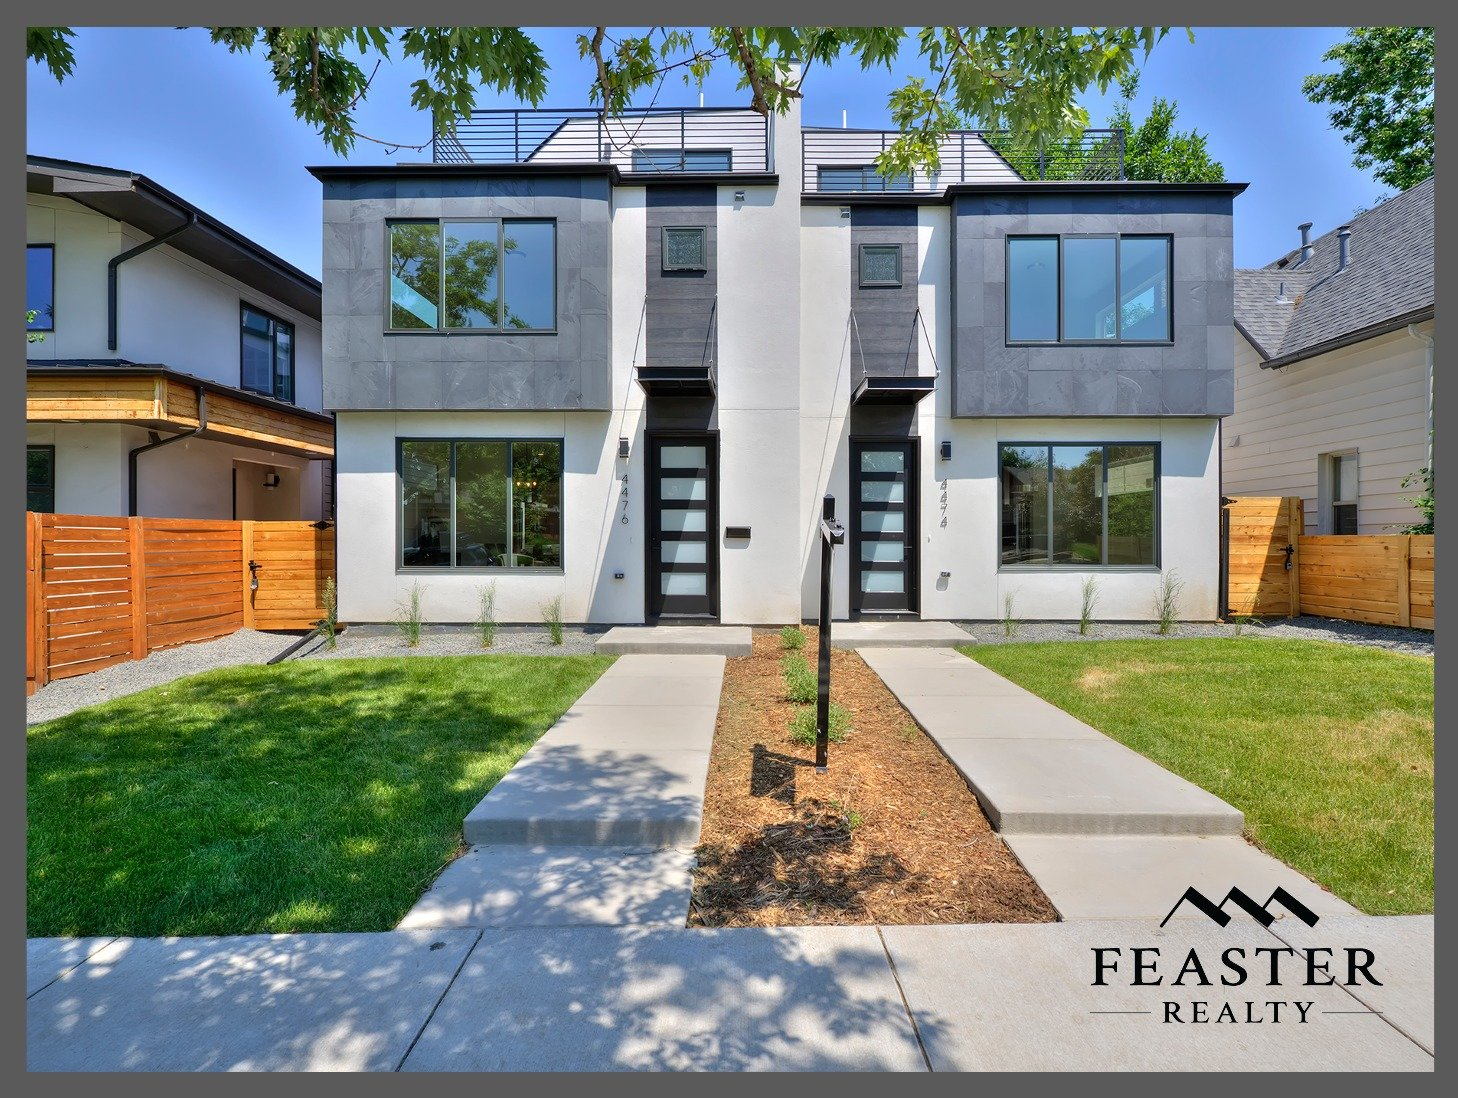 New Modern Duplex For Sale in Denver's Berkeley Neighborhood